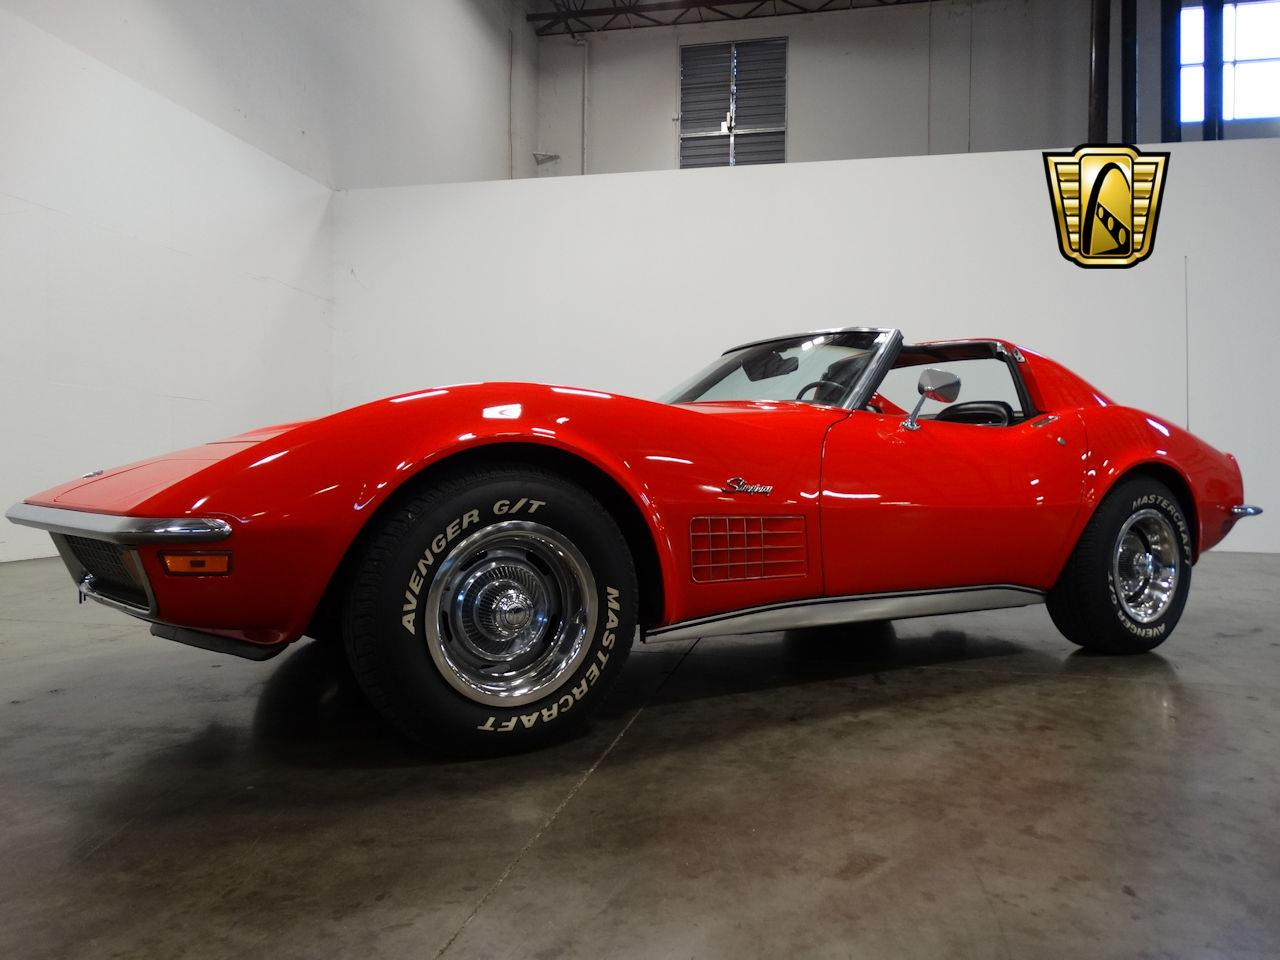 Large Picture of Classic 1972 Corvette located in La Vergne Tennessee - $26,995.00 Offered by Gateway Classic Cars - Nashville - ME53